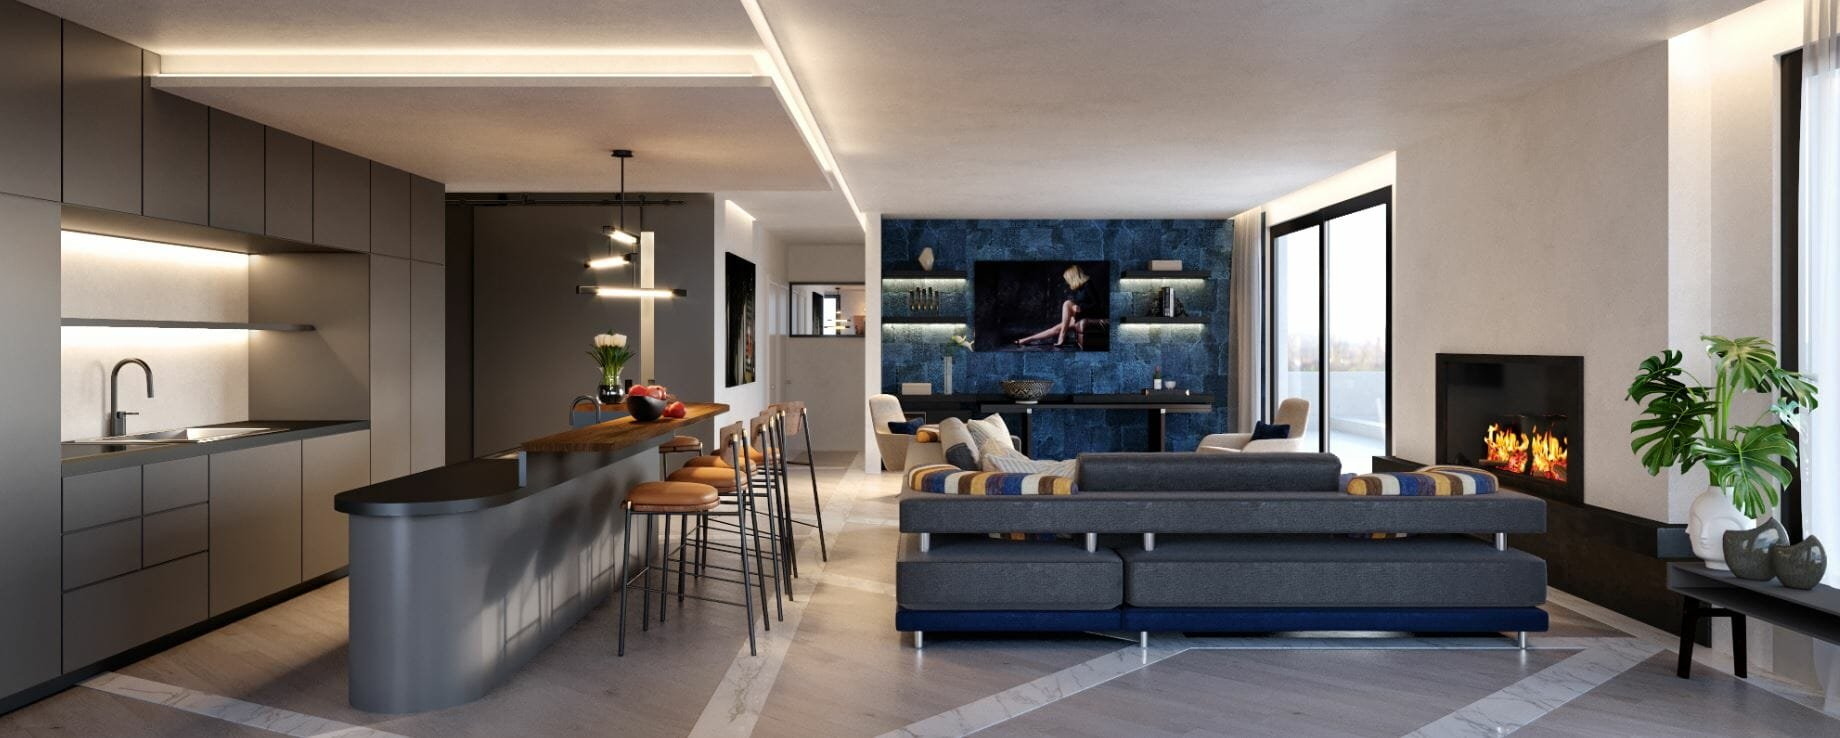 decorilla vs havenly - decorilla living room 3d rendering